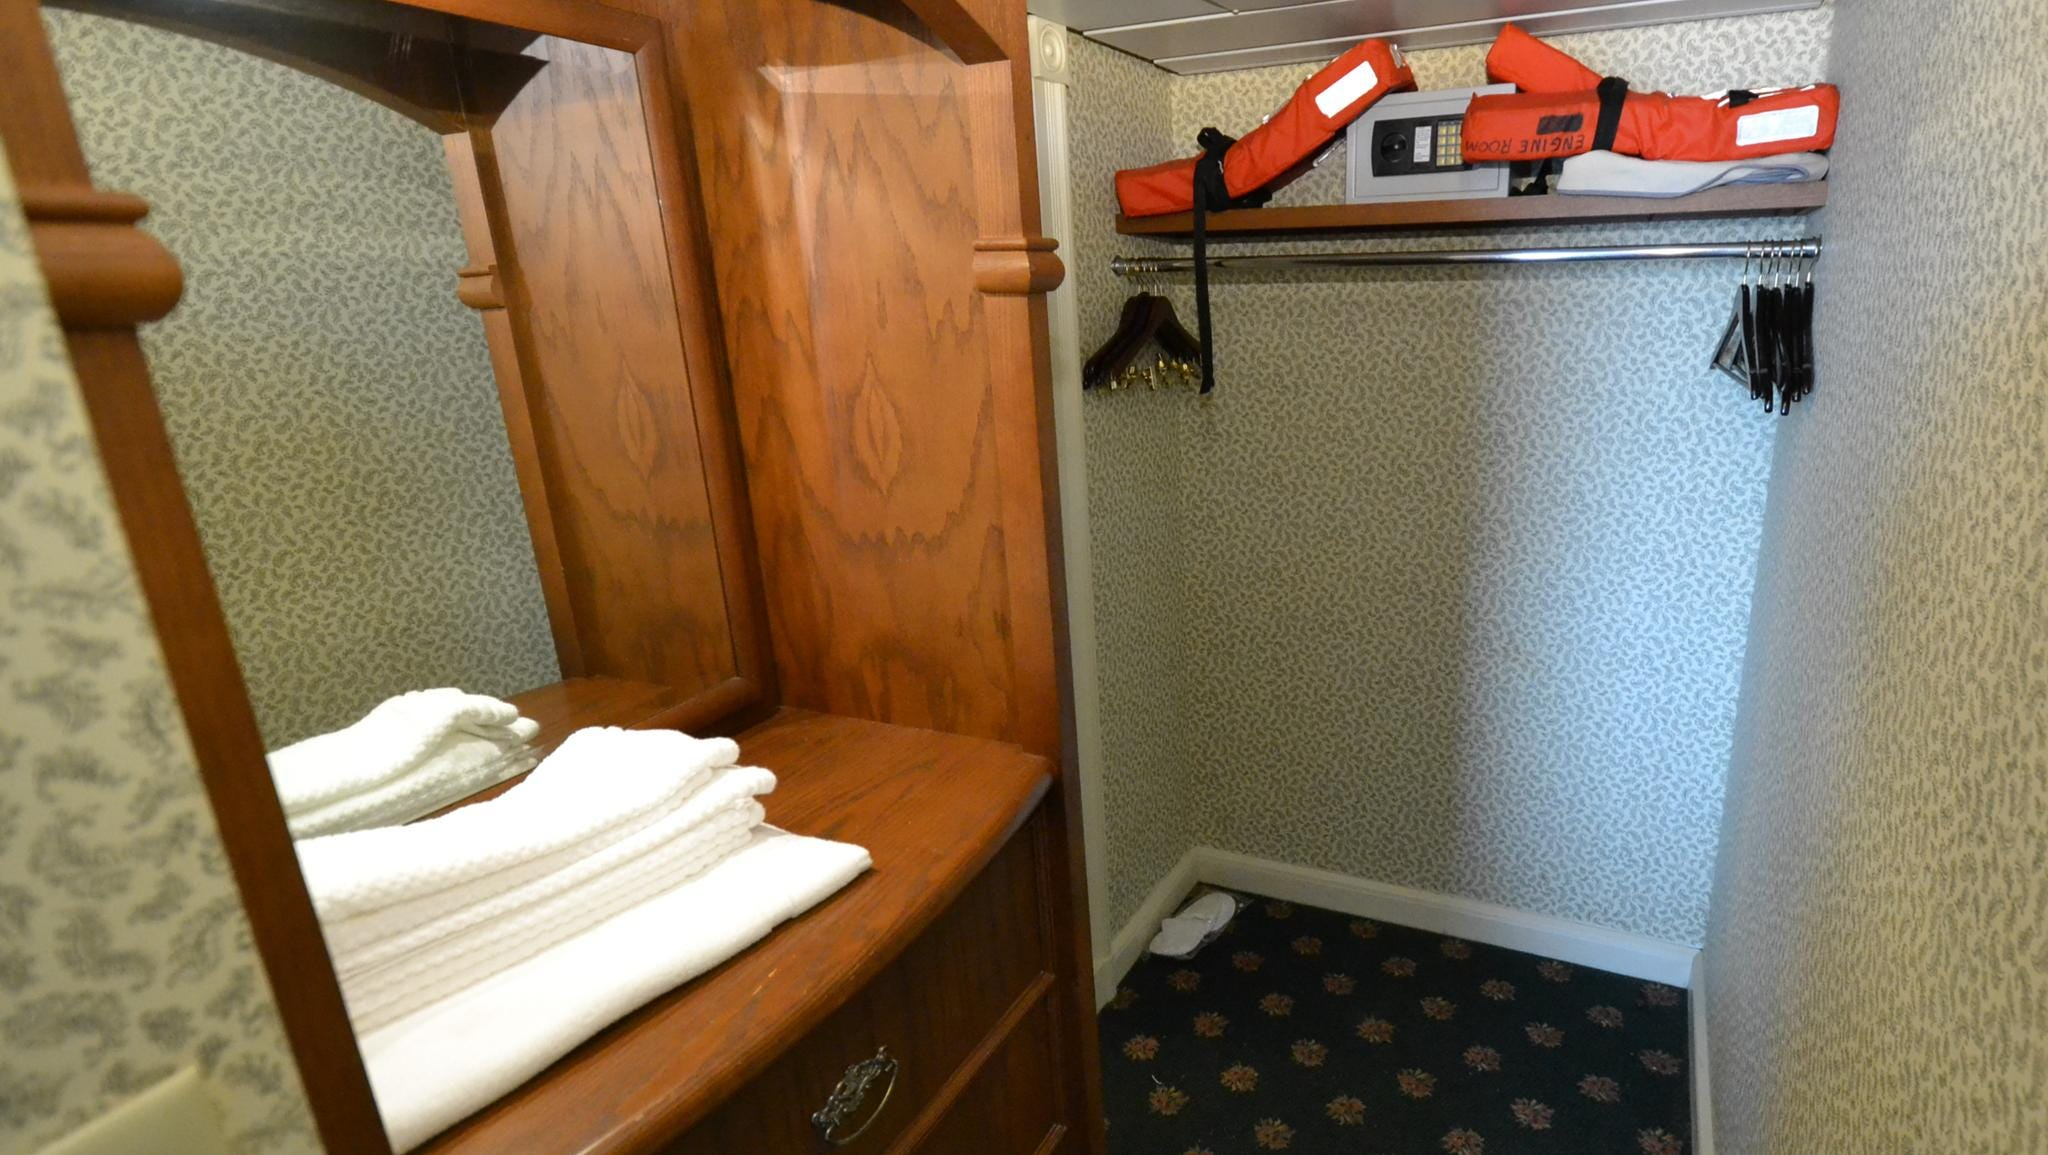 The closet area of the Tennessee room is typical of what is found in the Deluxe Outside Stateroom with Veranda category of cabins